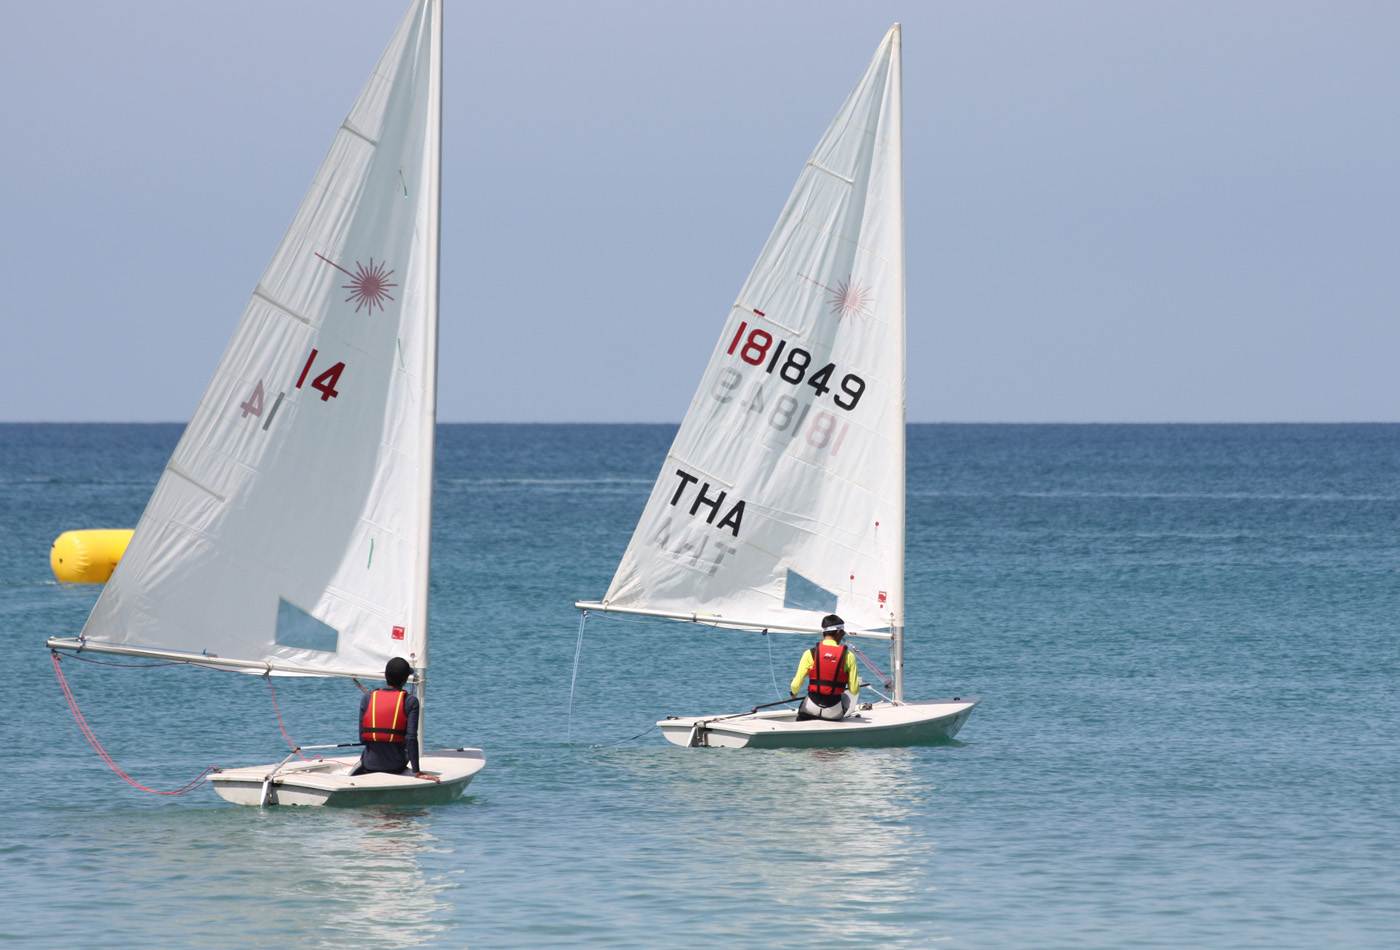 Light winds proved challenging for the Laser Class at Act II of the 2012 Phuket Dinghy Series held off Bang Tao Beach. Photo by MarineScene.asia.